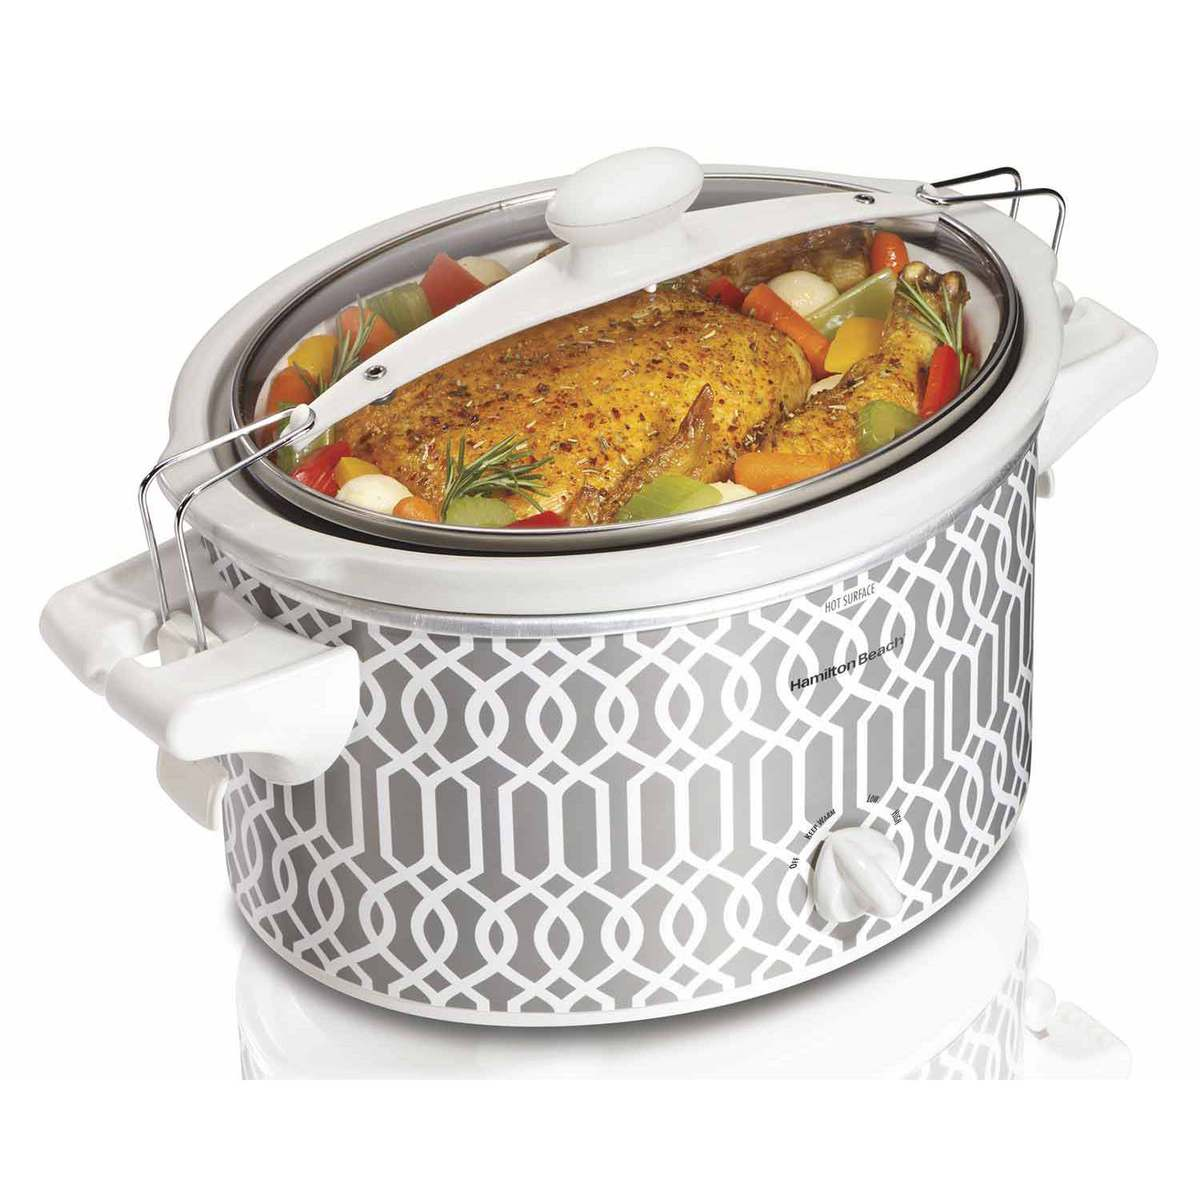 Stay or Go® 4 Quart Trellis Slow Cooker (33346)